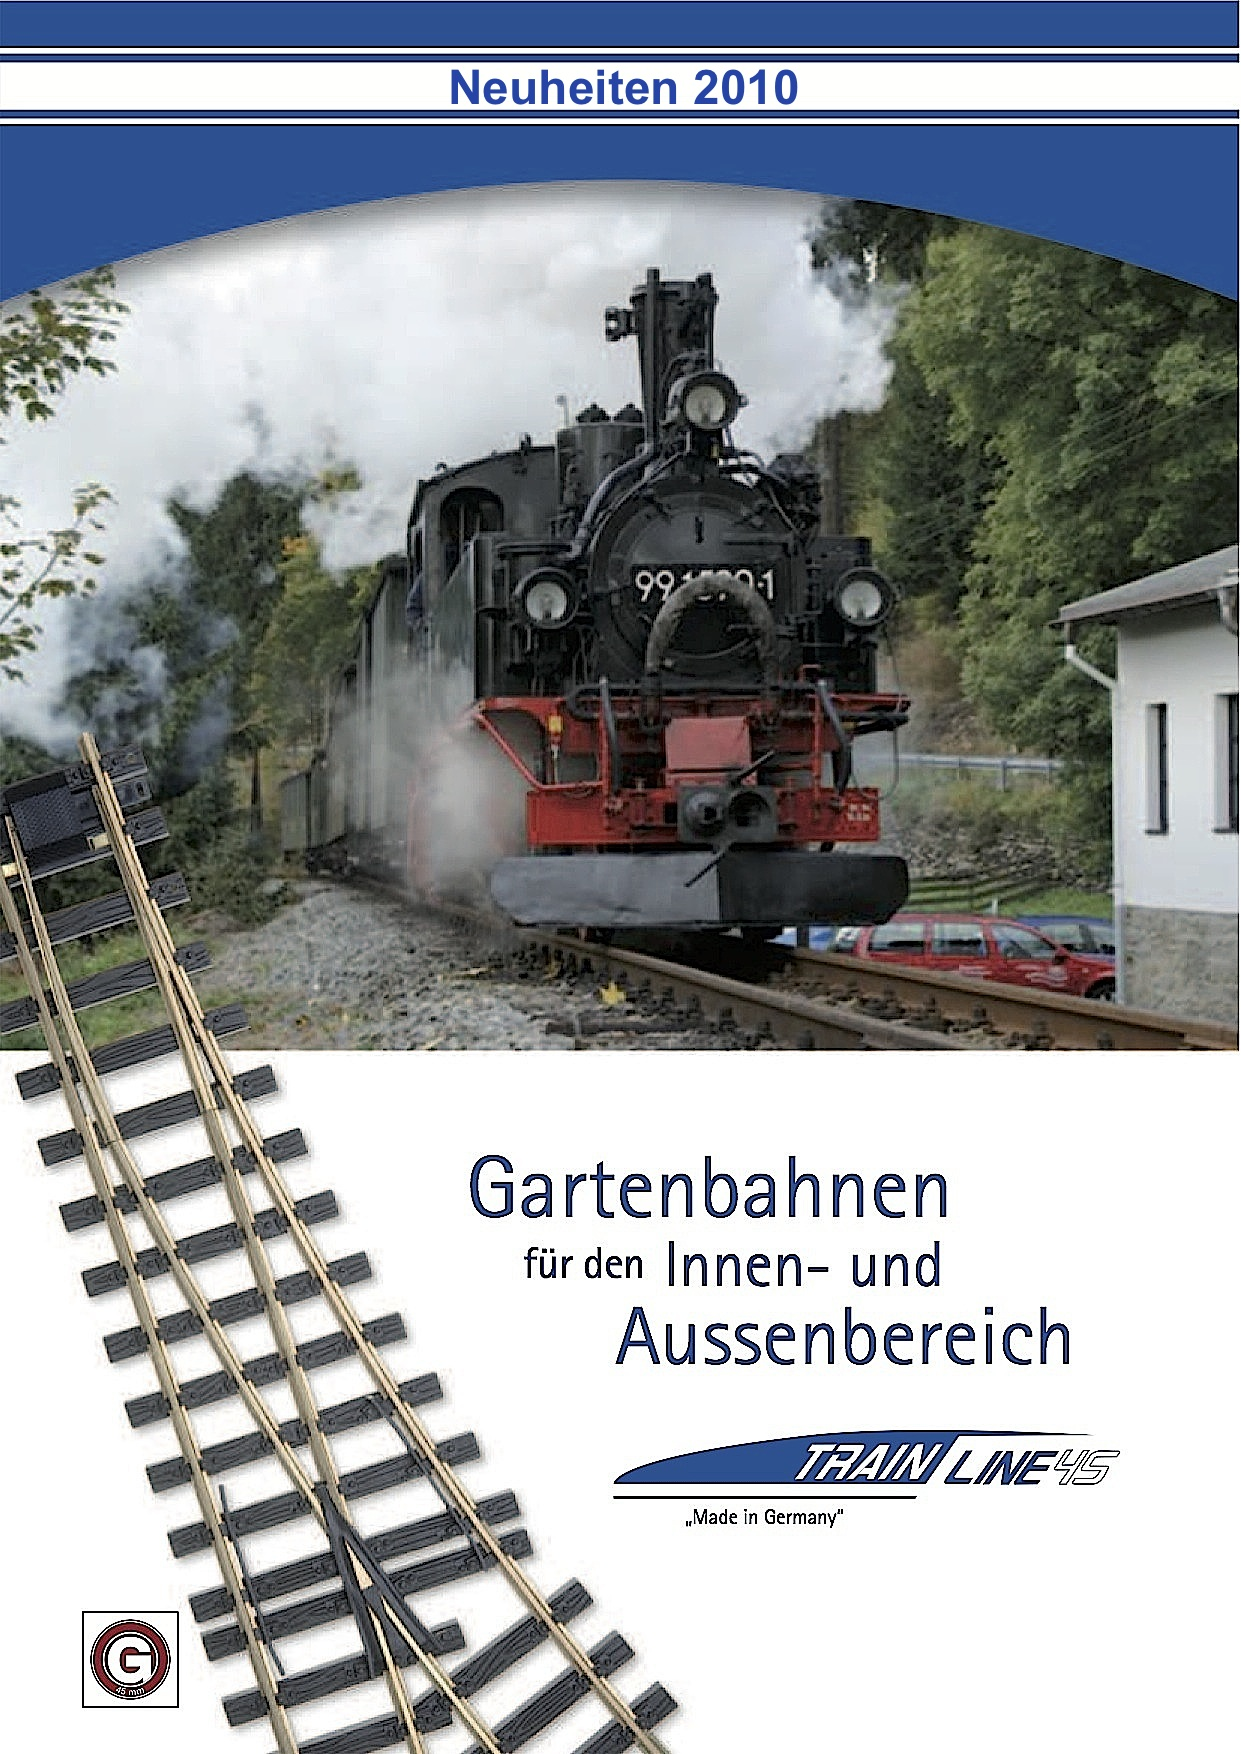 Train Line Neuheiten (New Items) 2010